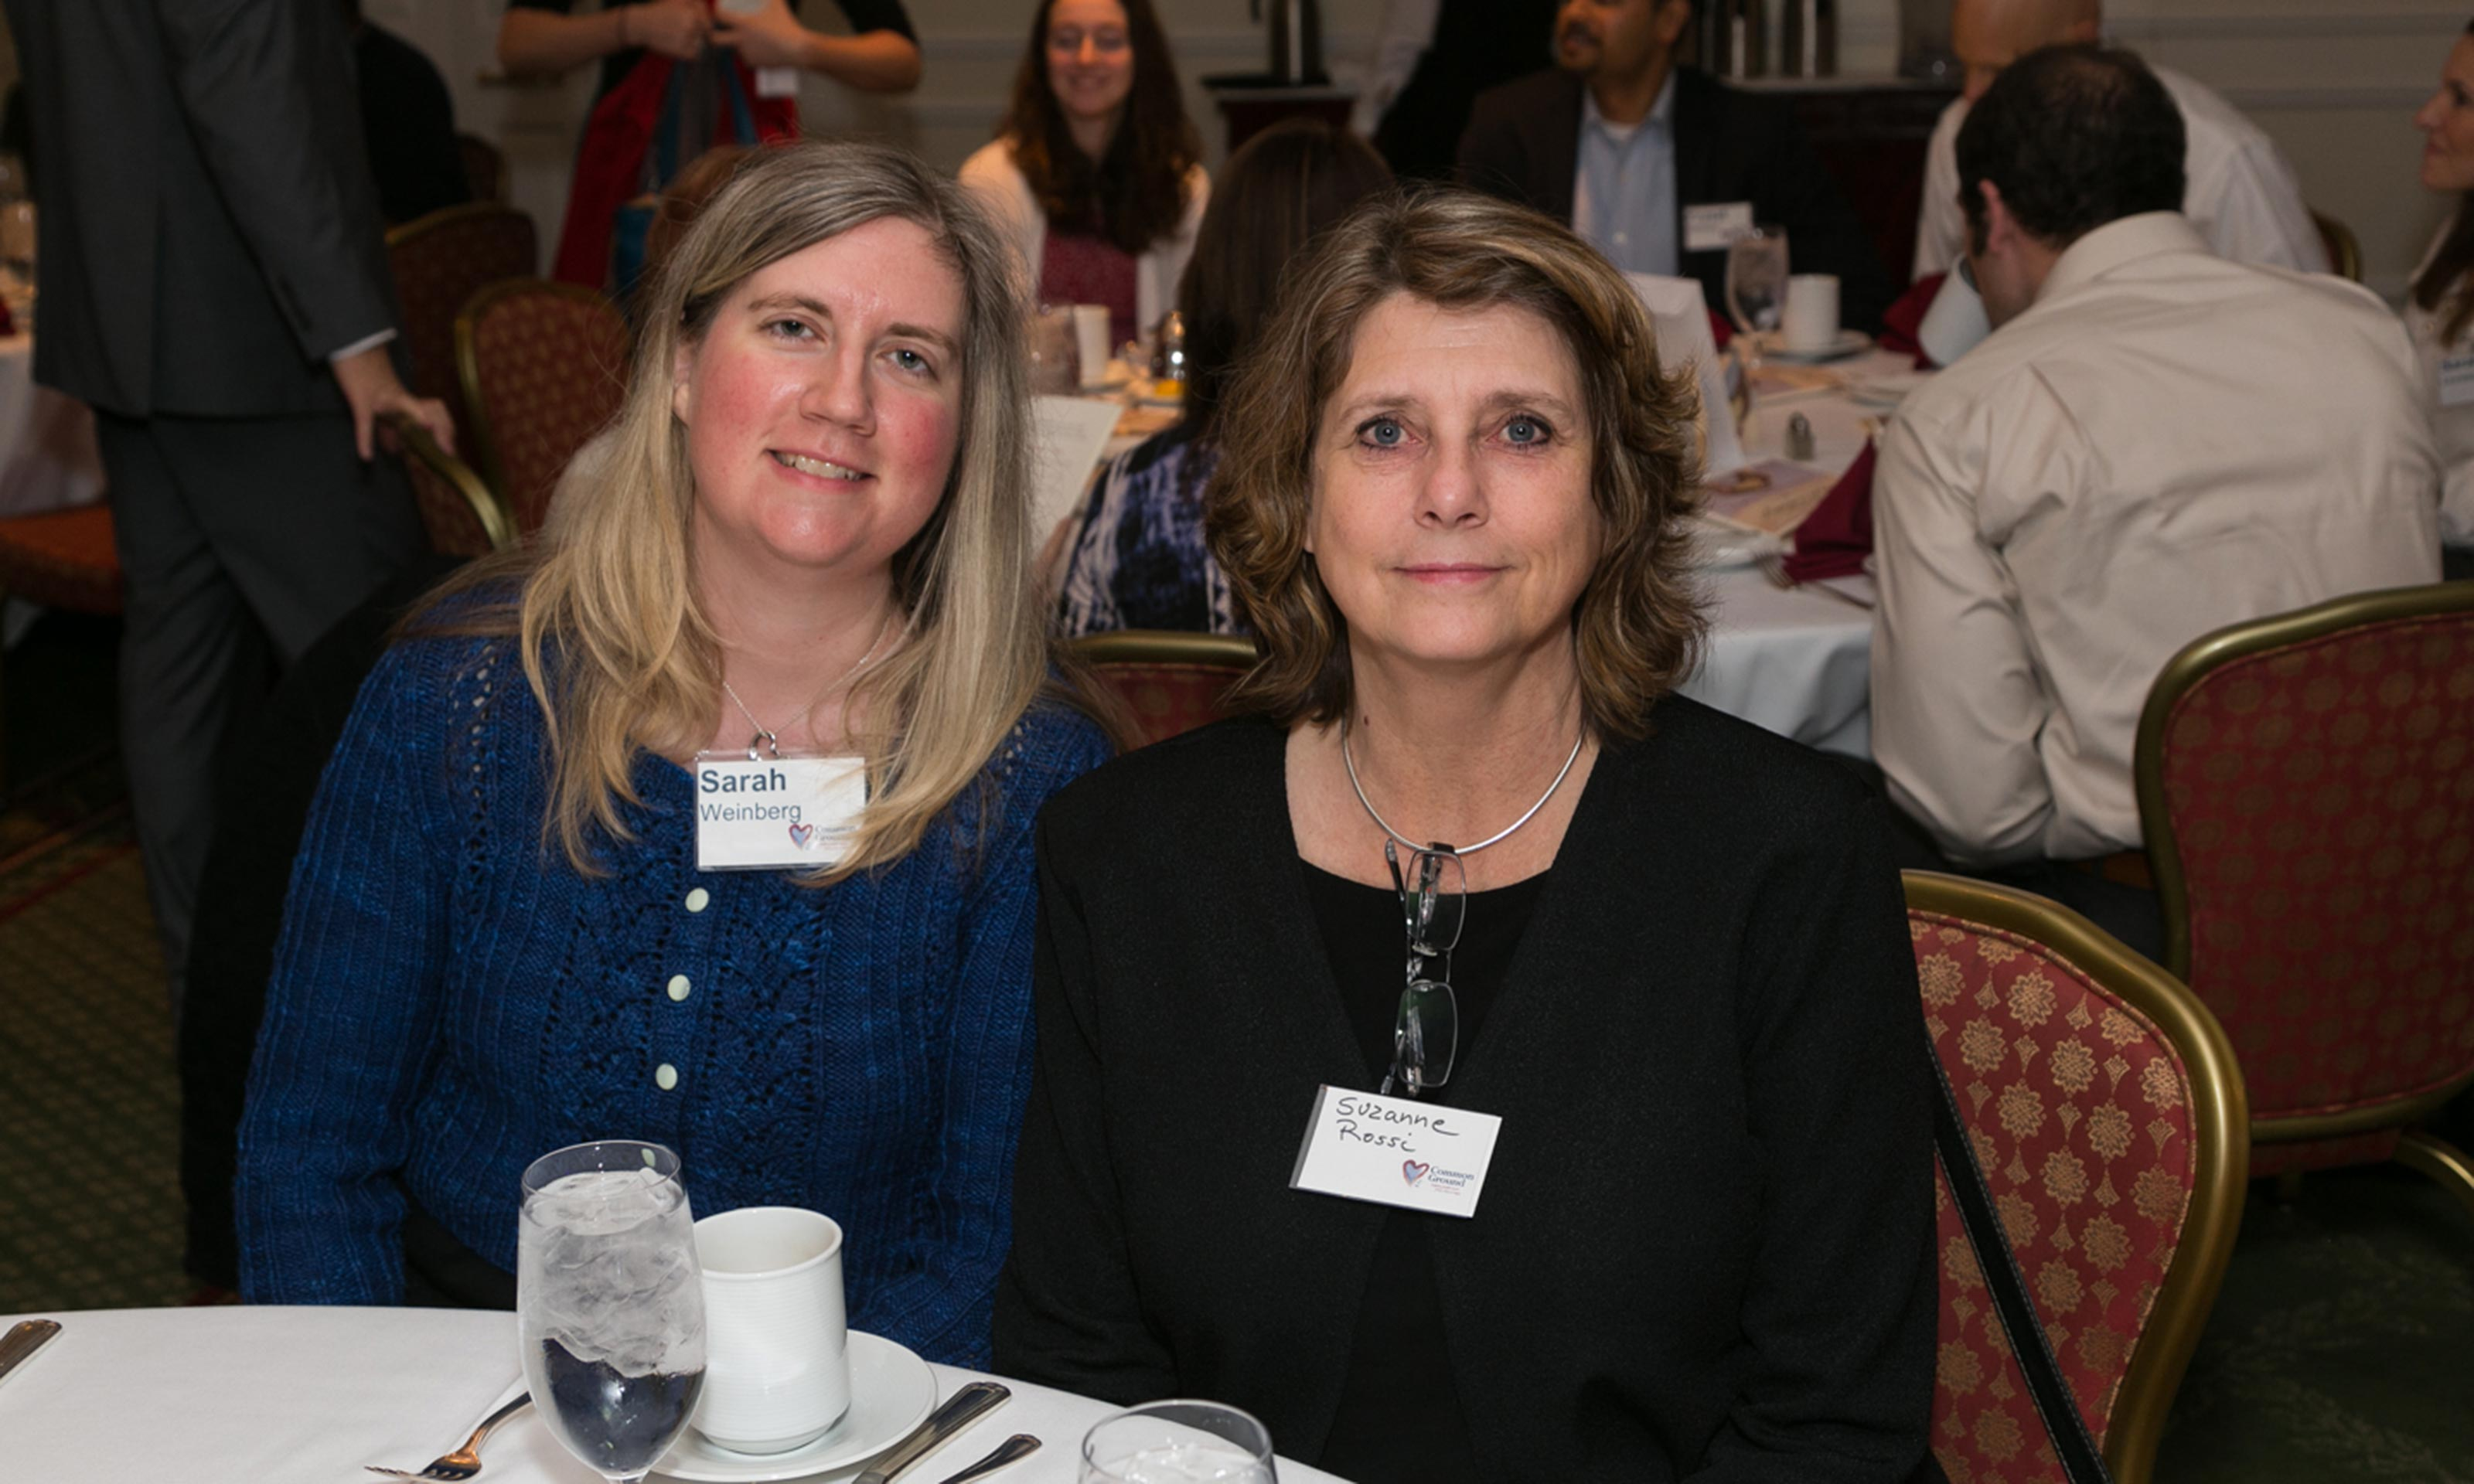 Oakland University alumna Sarah Hasenmueller Weinberg at a dinner table with Suzanne Rossi in a room with multiple tables